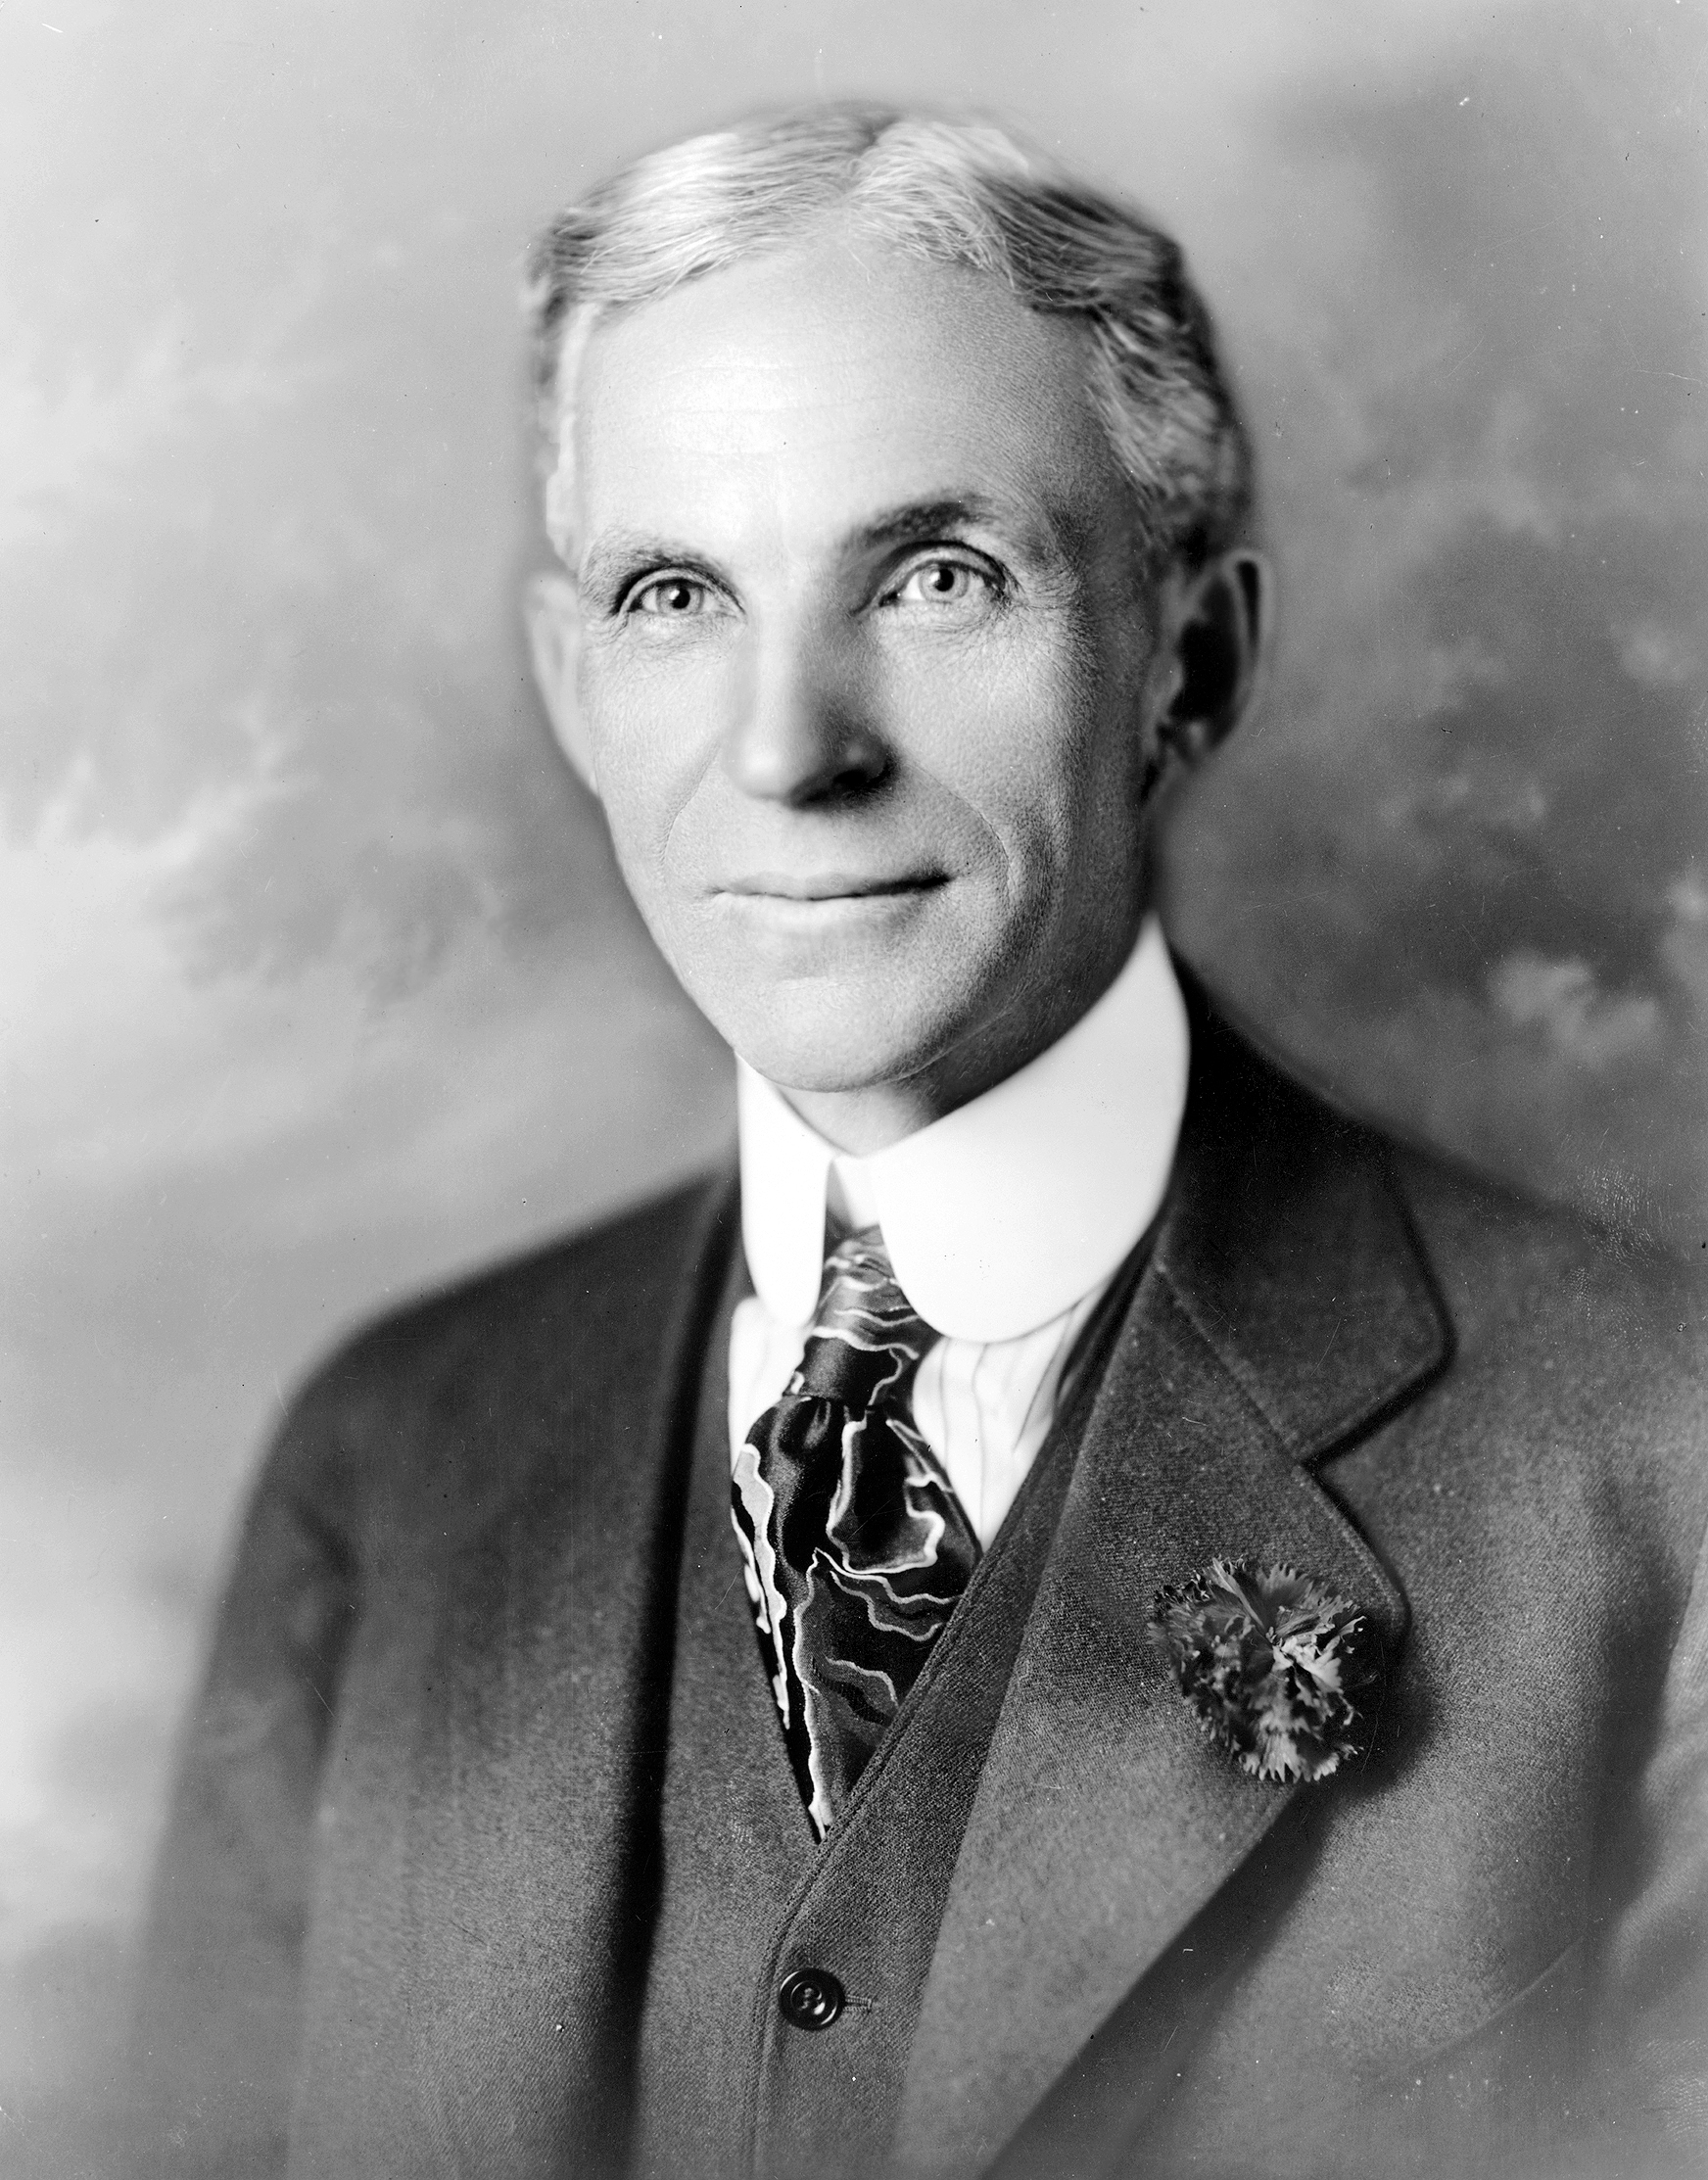 Description Henry ford 1919.jpg